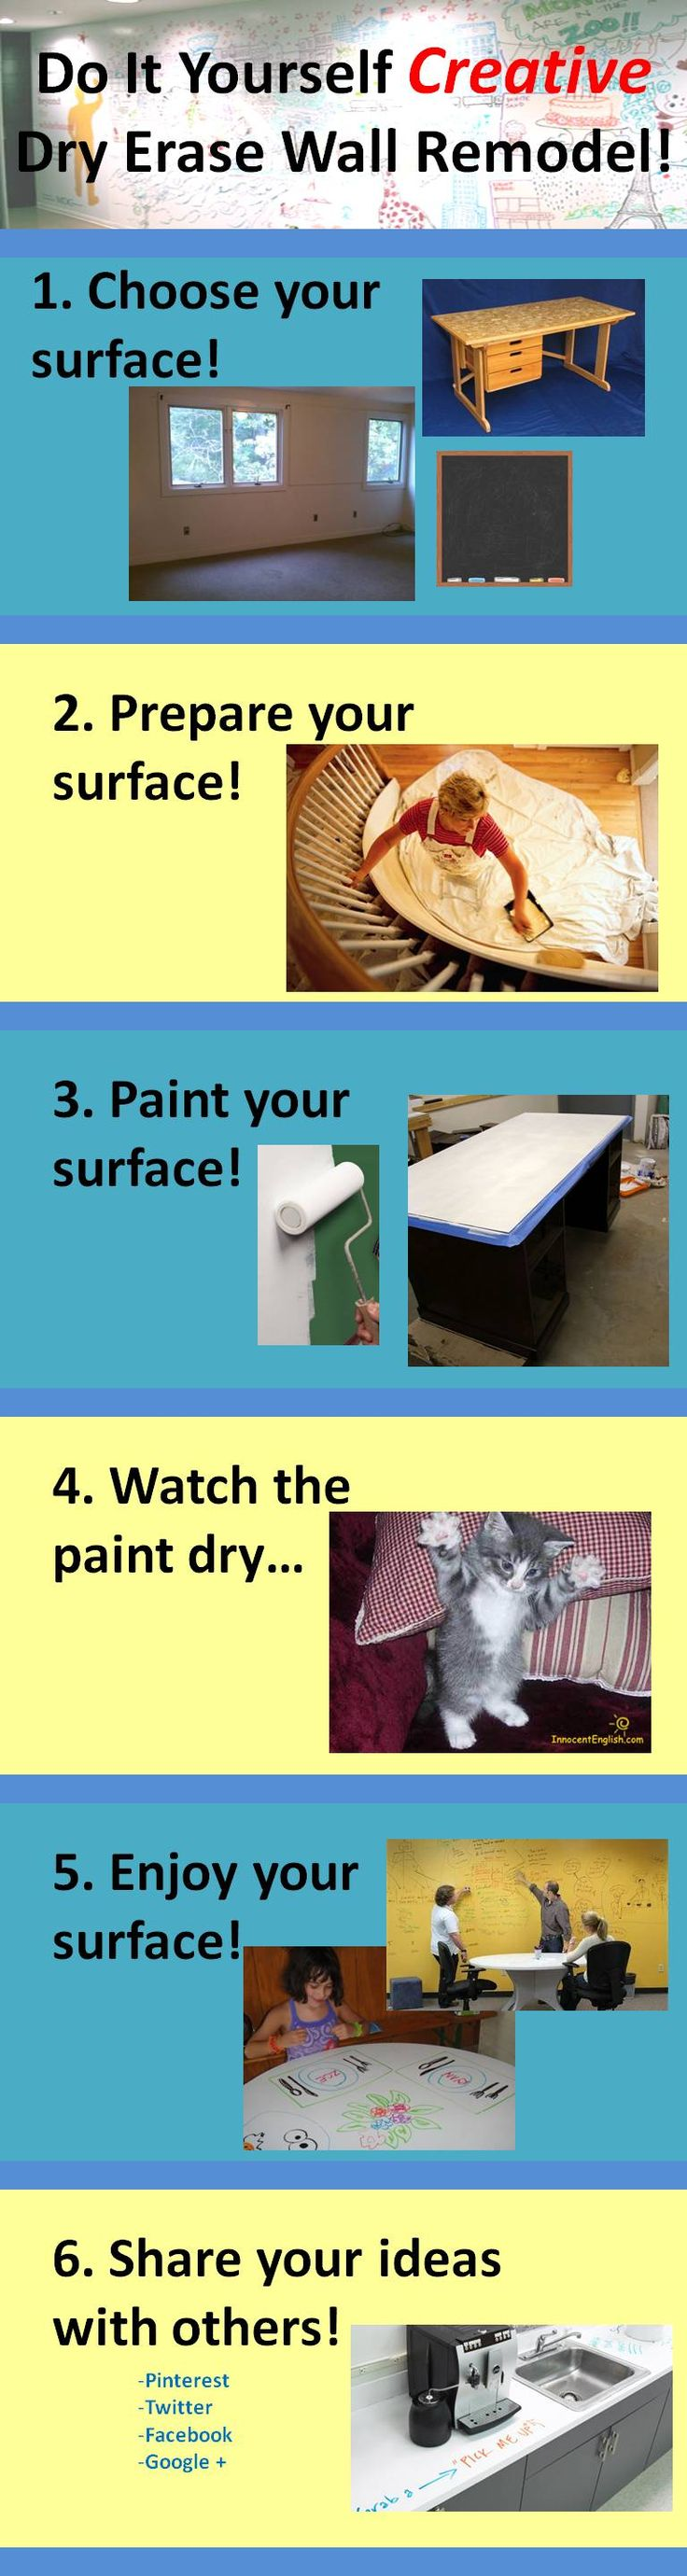 How to make any surface dry erase capable in 6 steps! Change a wall, table, chalkboard, or anything into a dry erase surface - tons of potential for the creative mind!